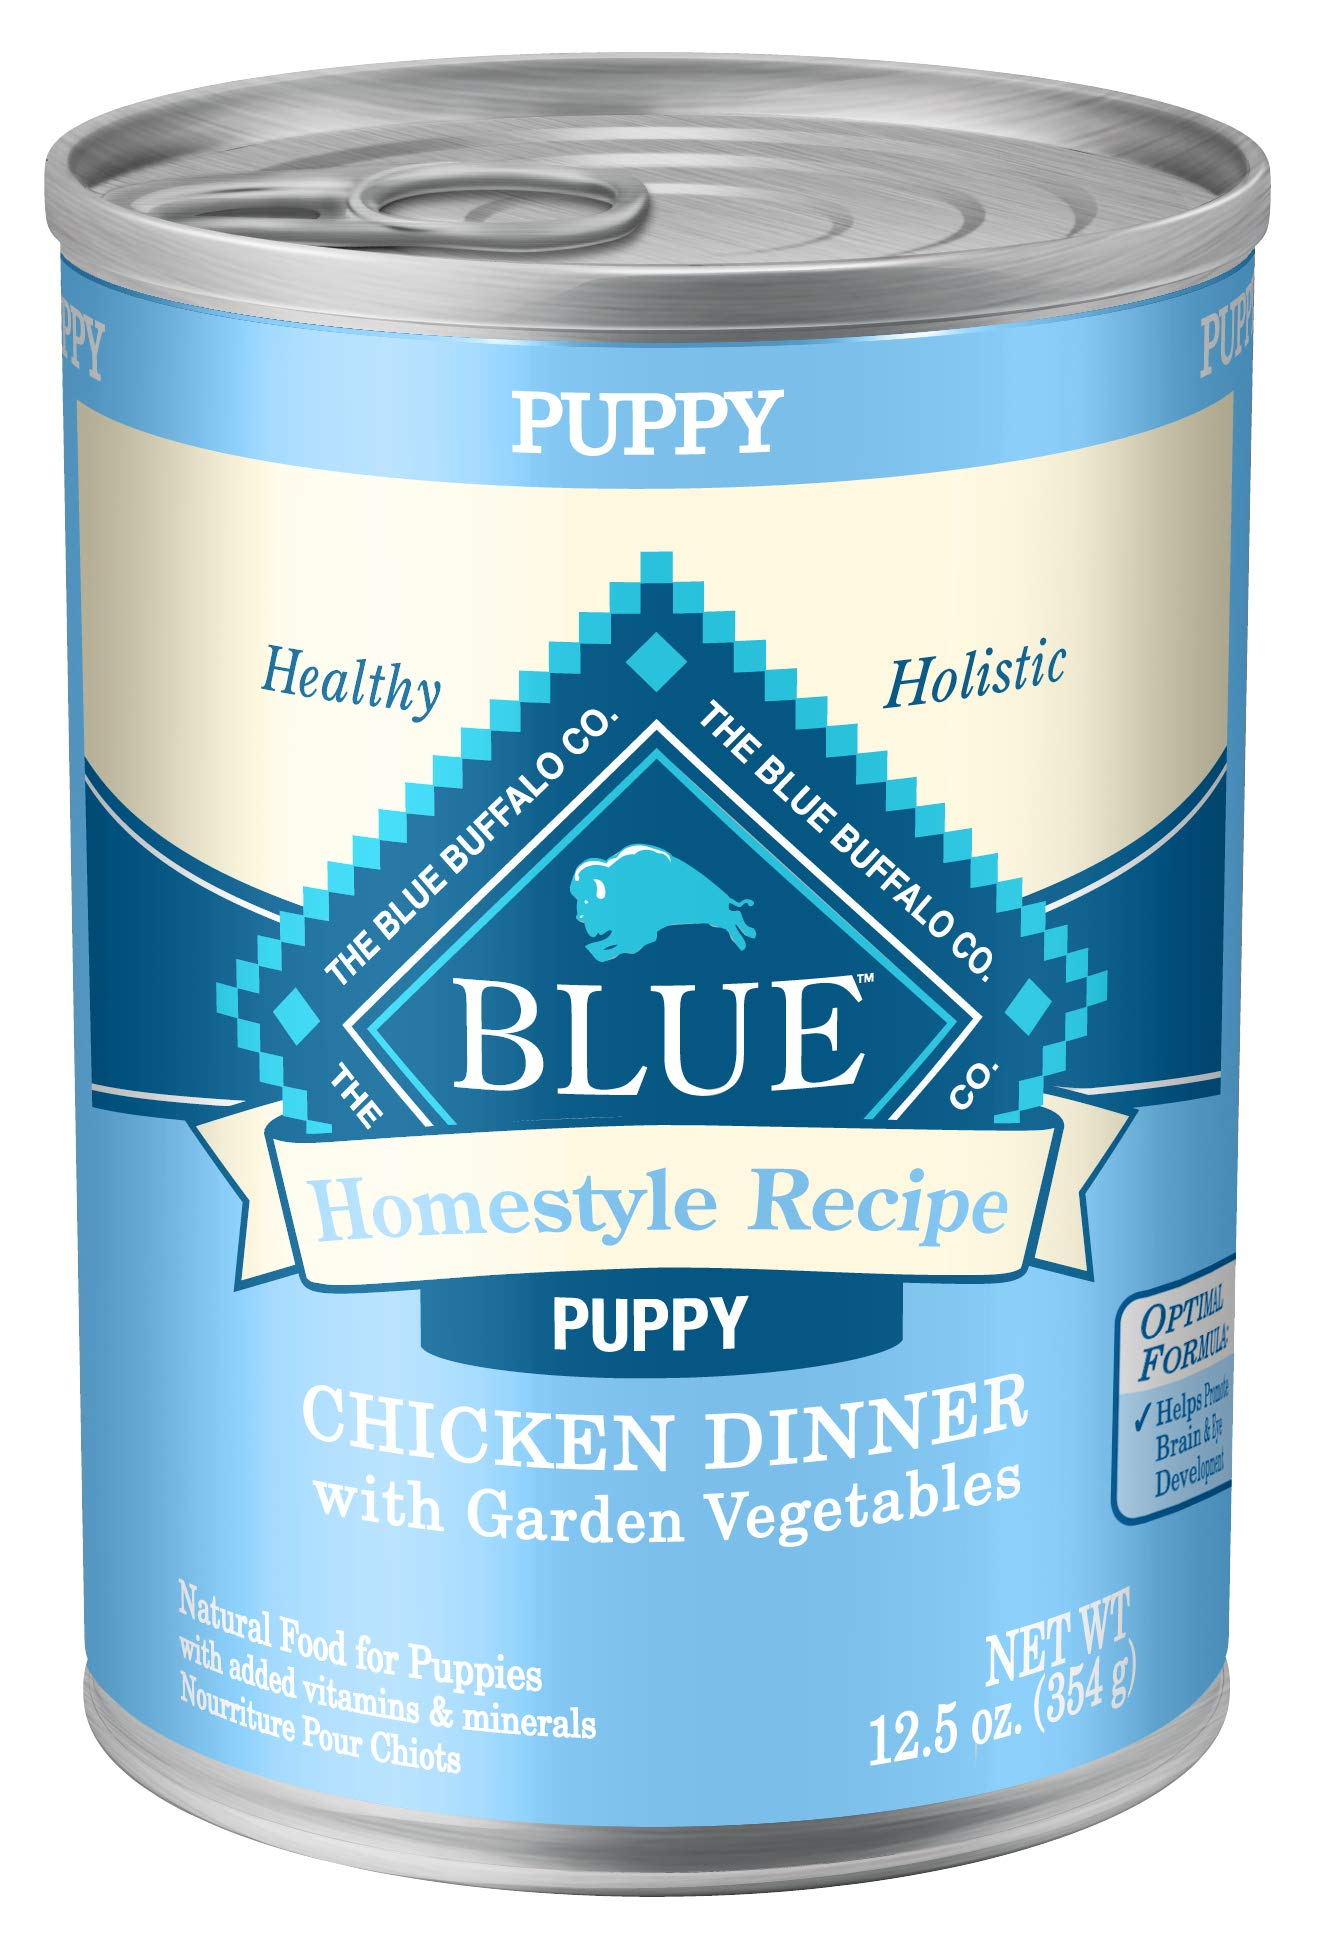 Blue Buffalo Homestyle Recipe Natural Puppy Wet Dog Food, Chicken 12.5-oz can (Pack of 12) by Blue Buffalo